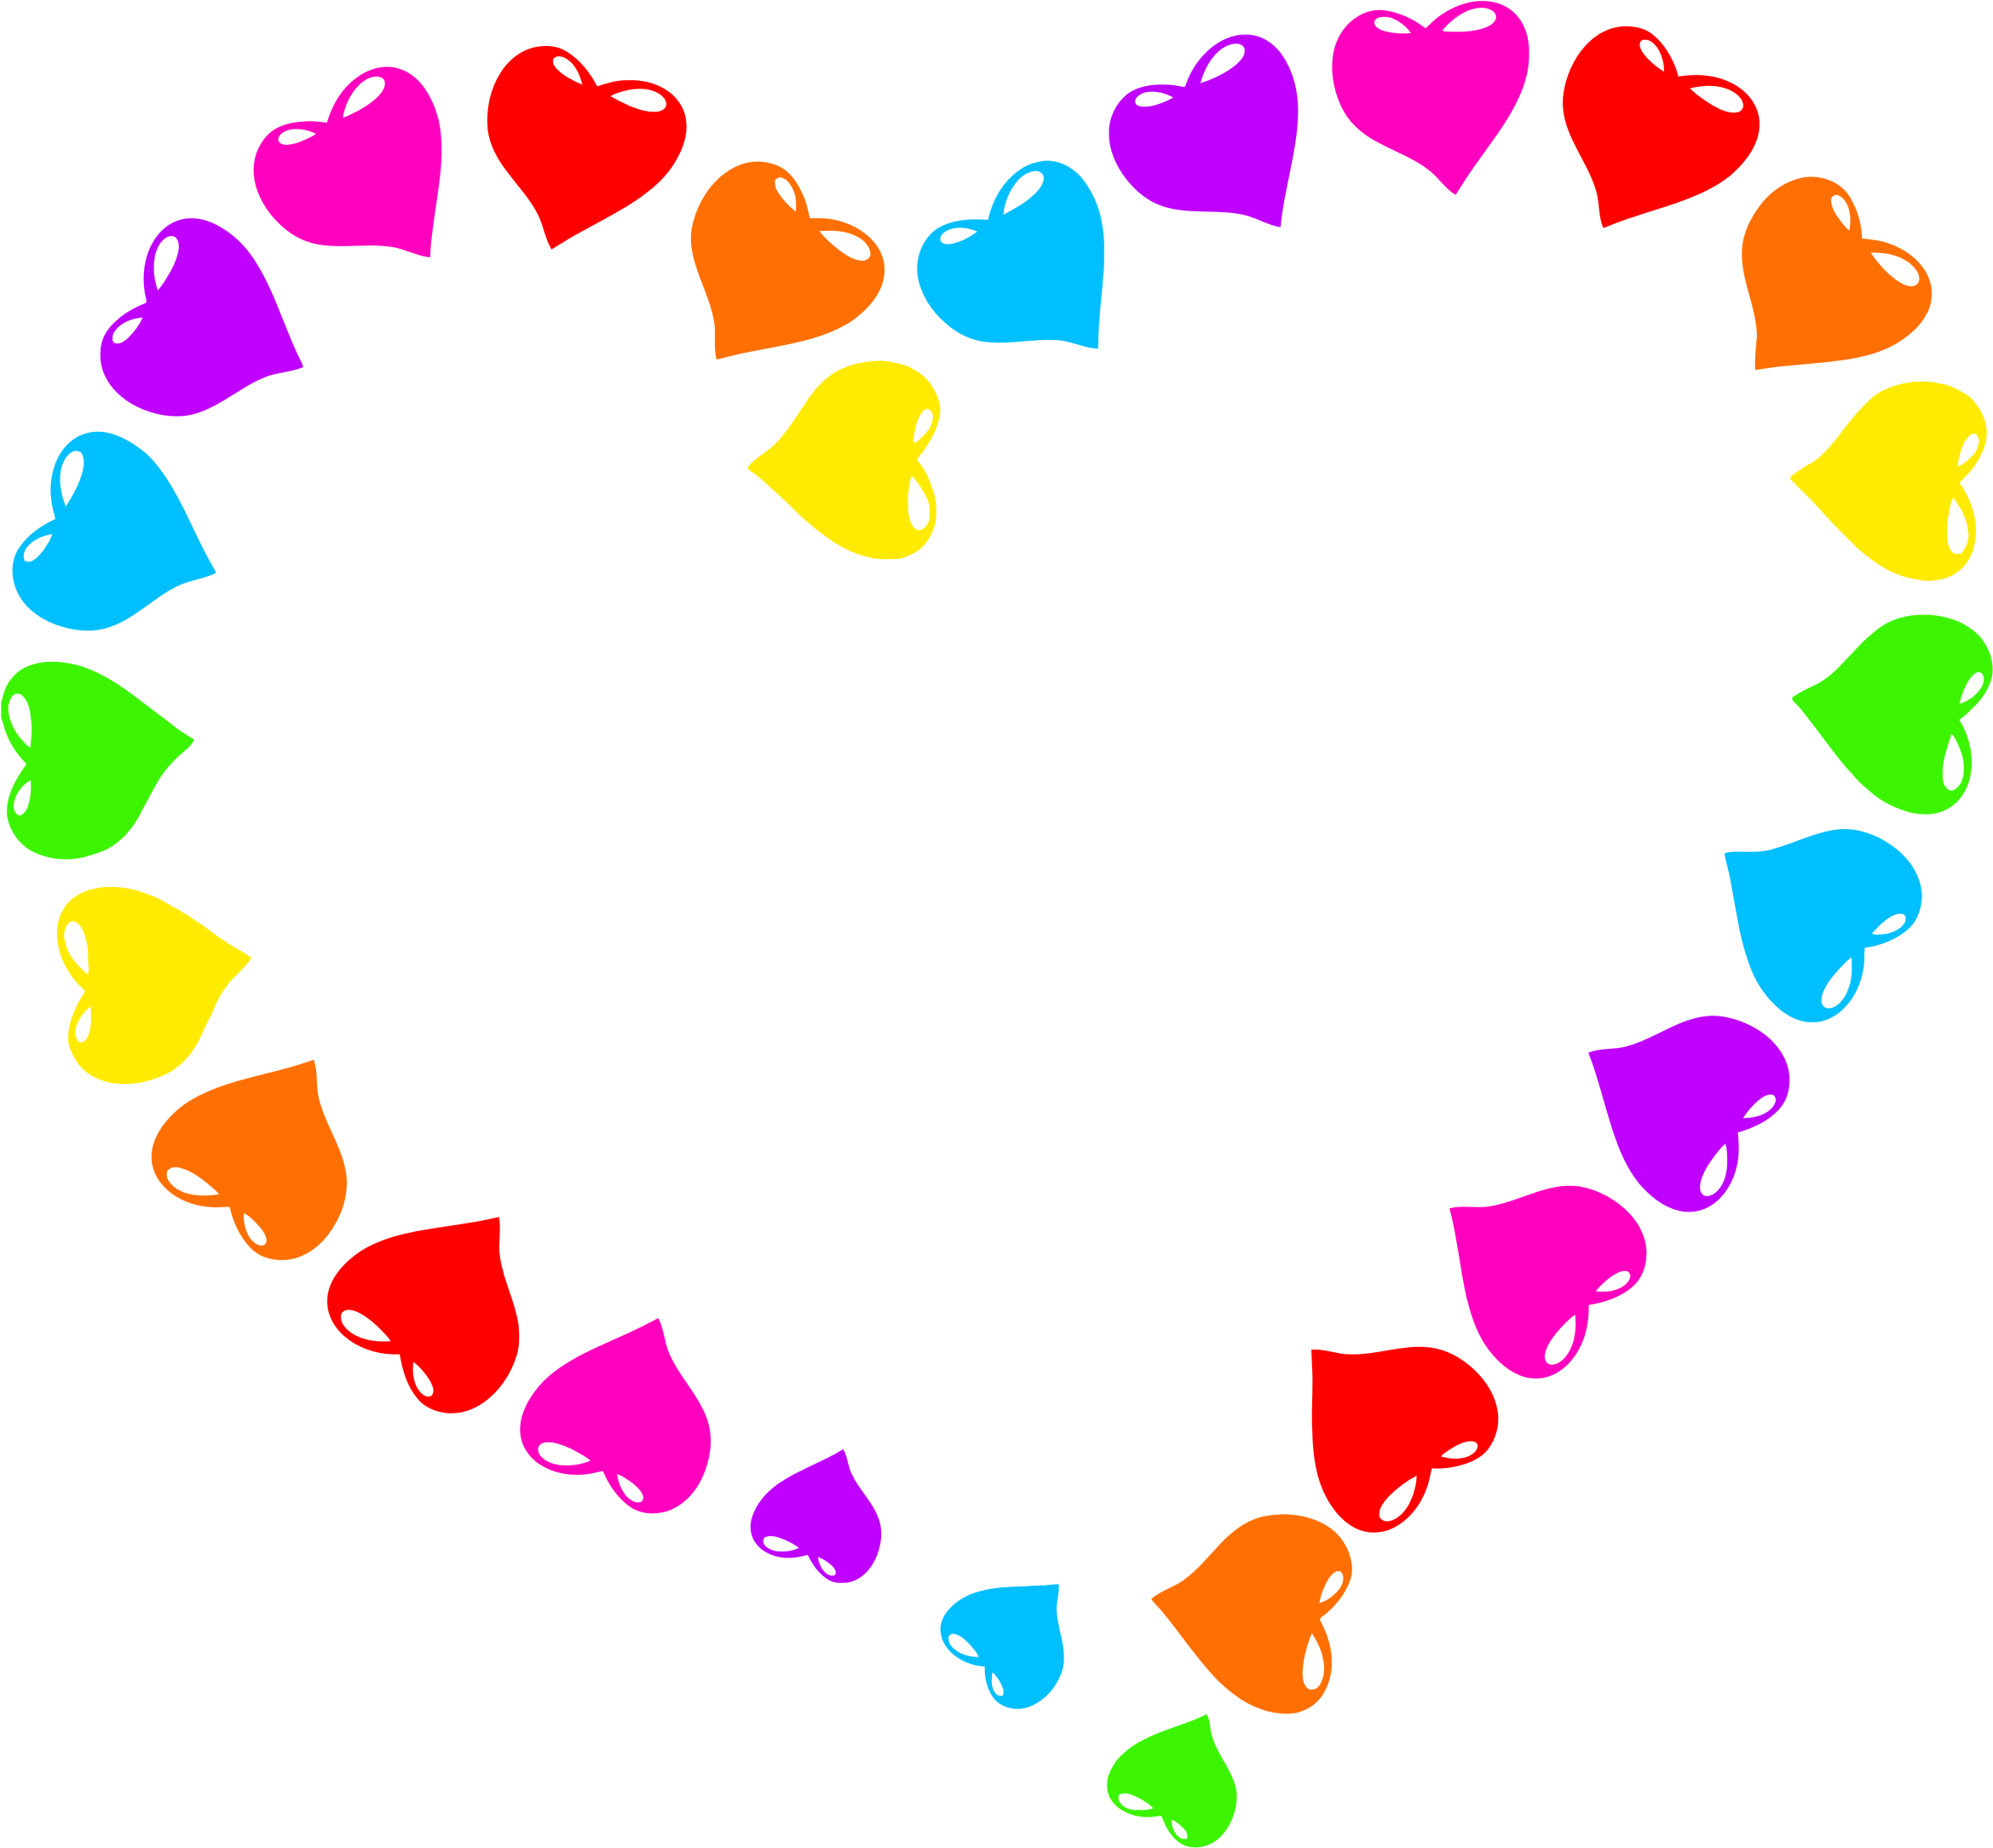 Rainbow heart png. Clipart big image